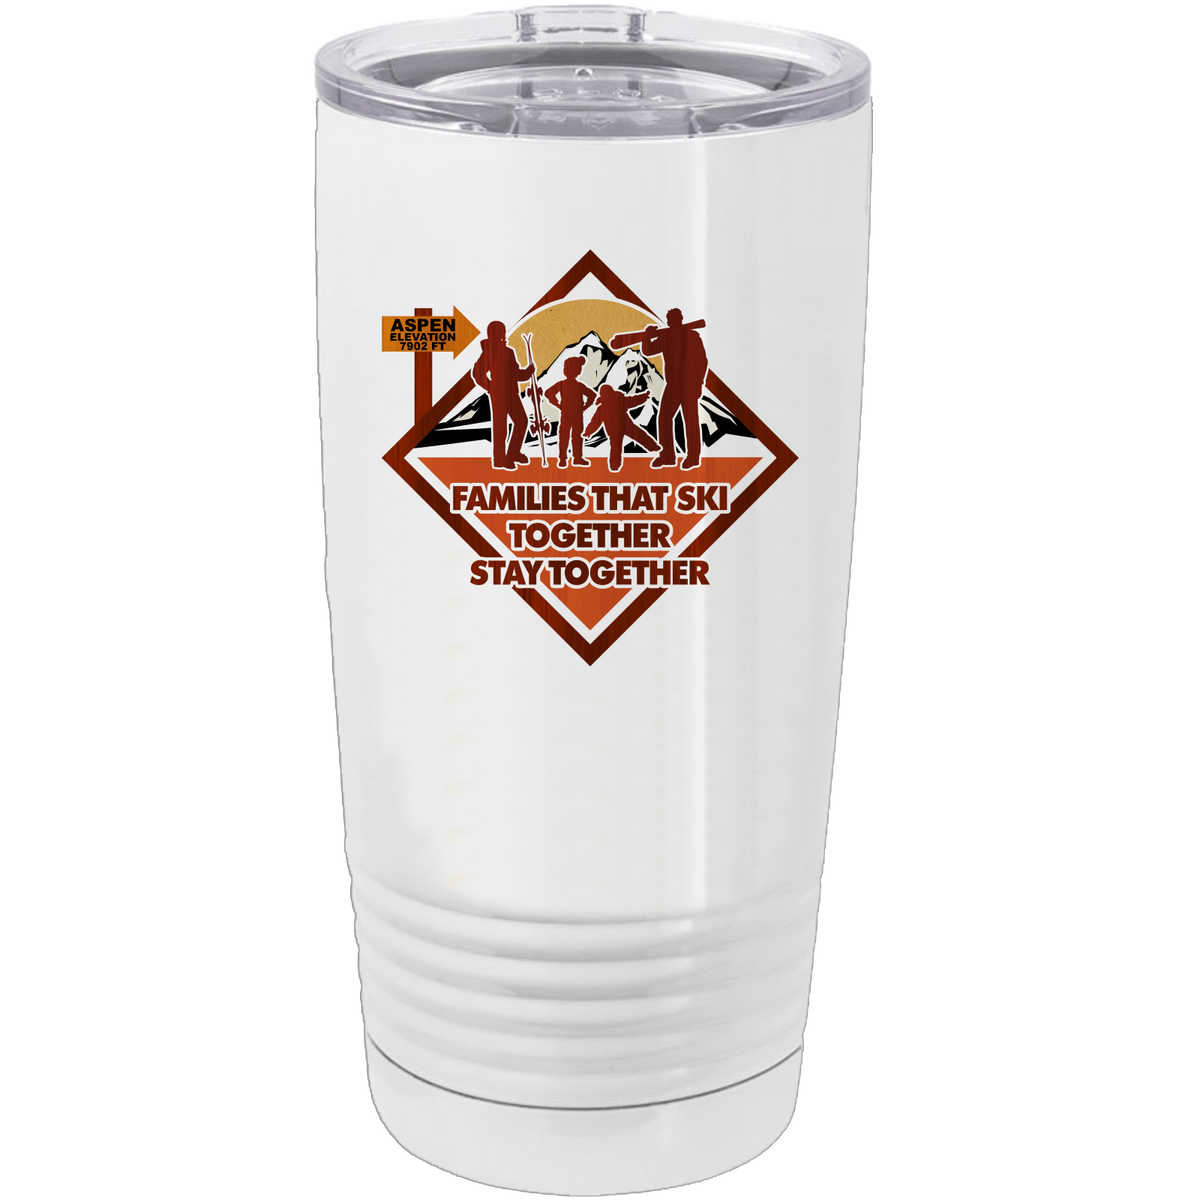 Families that Ski Together Stay Together - 20oz. Tumbler with Clear Lid